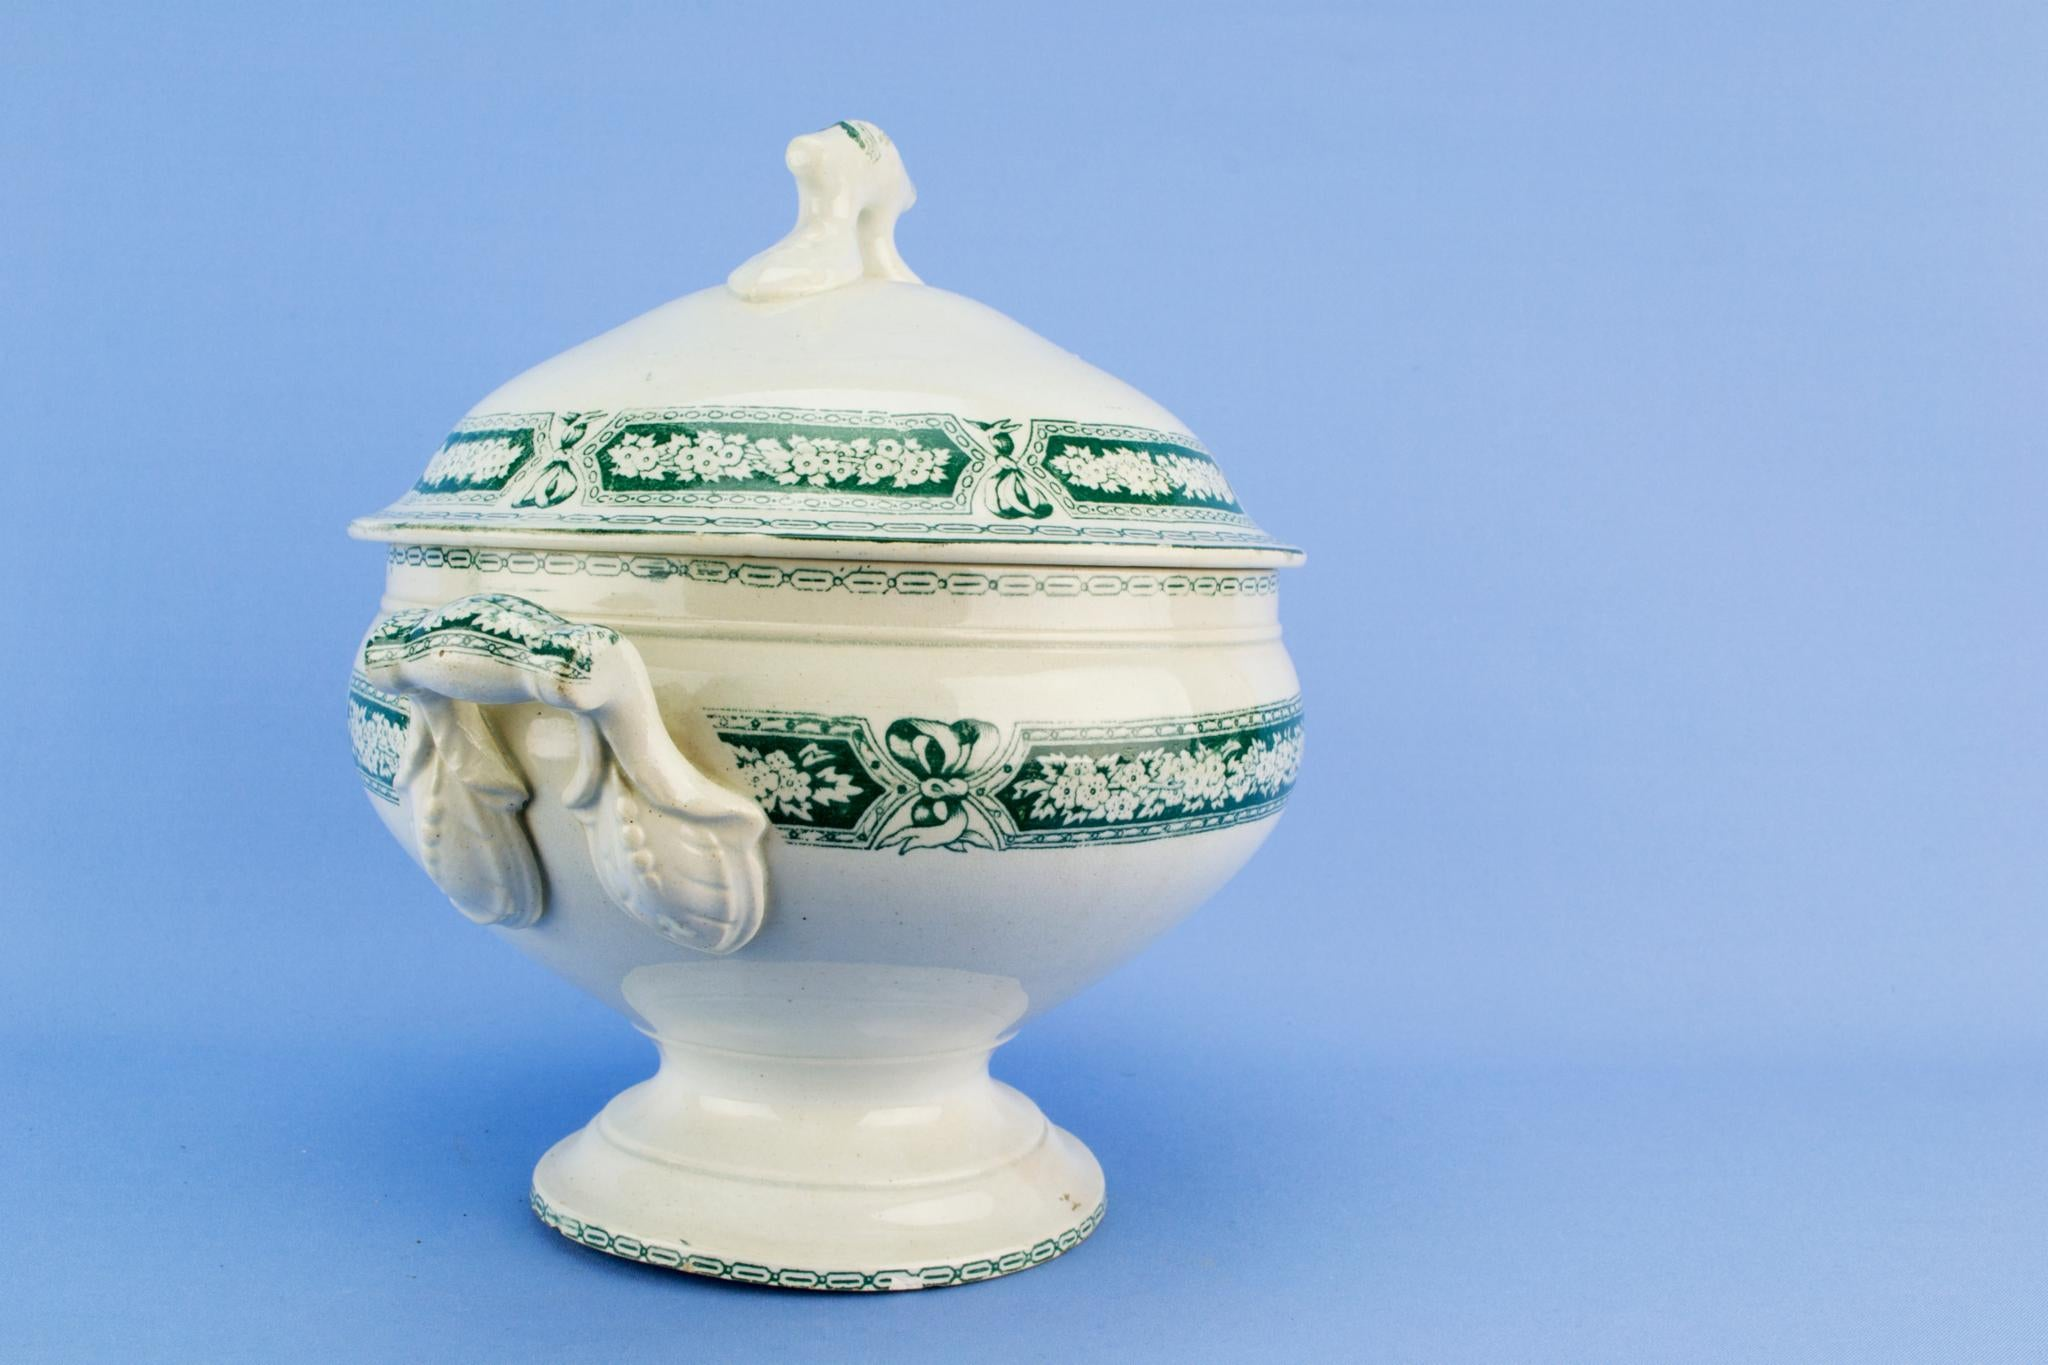 Large Green Floral Tureen, English 1870s